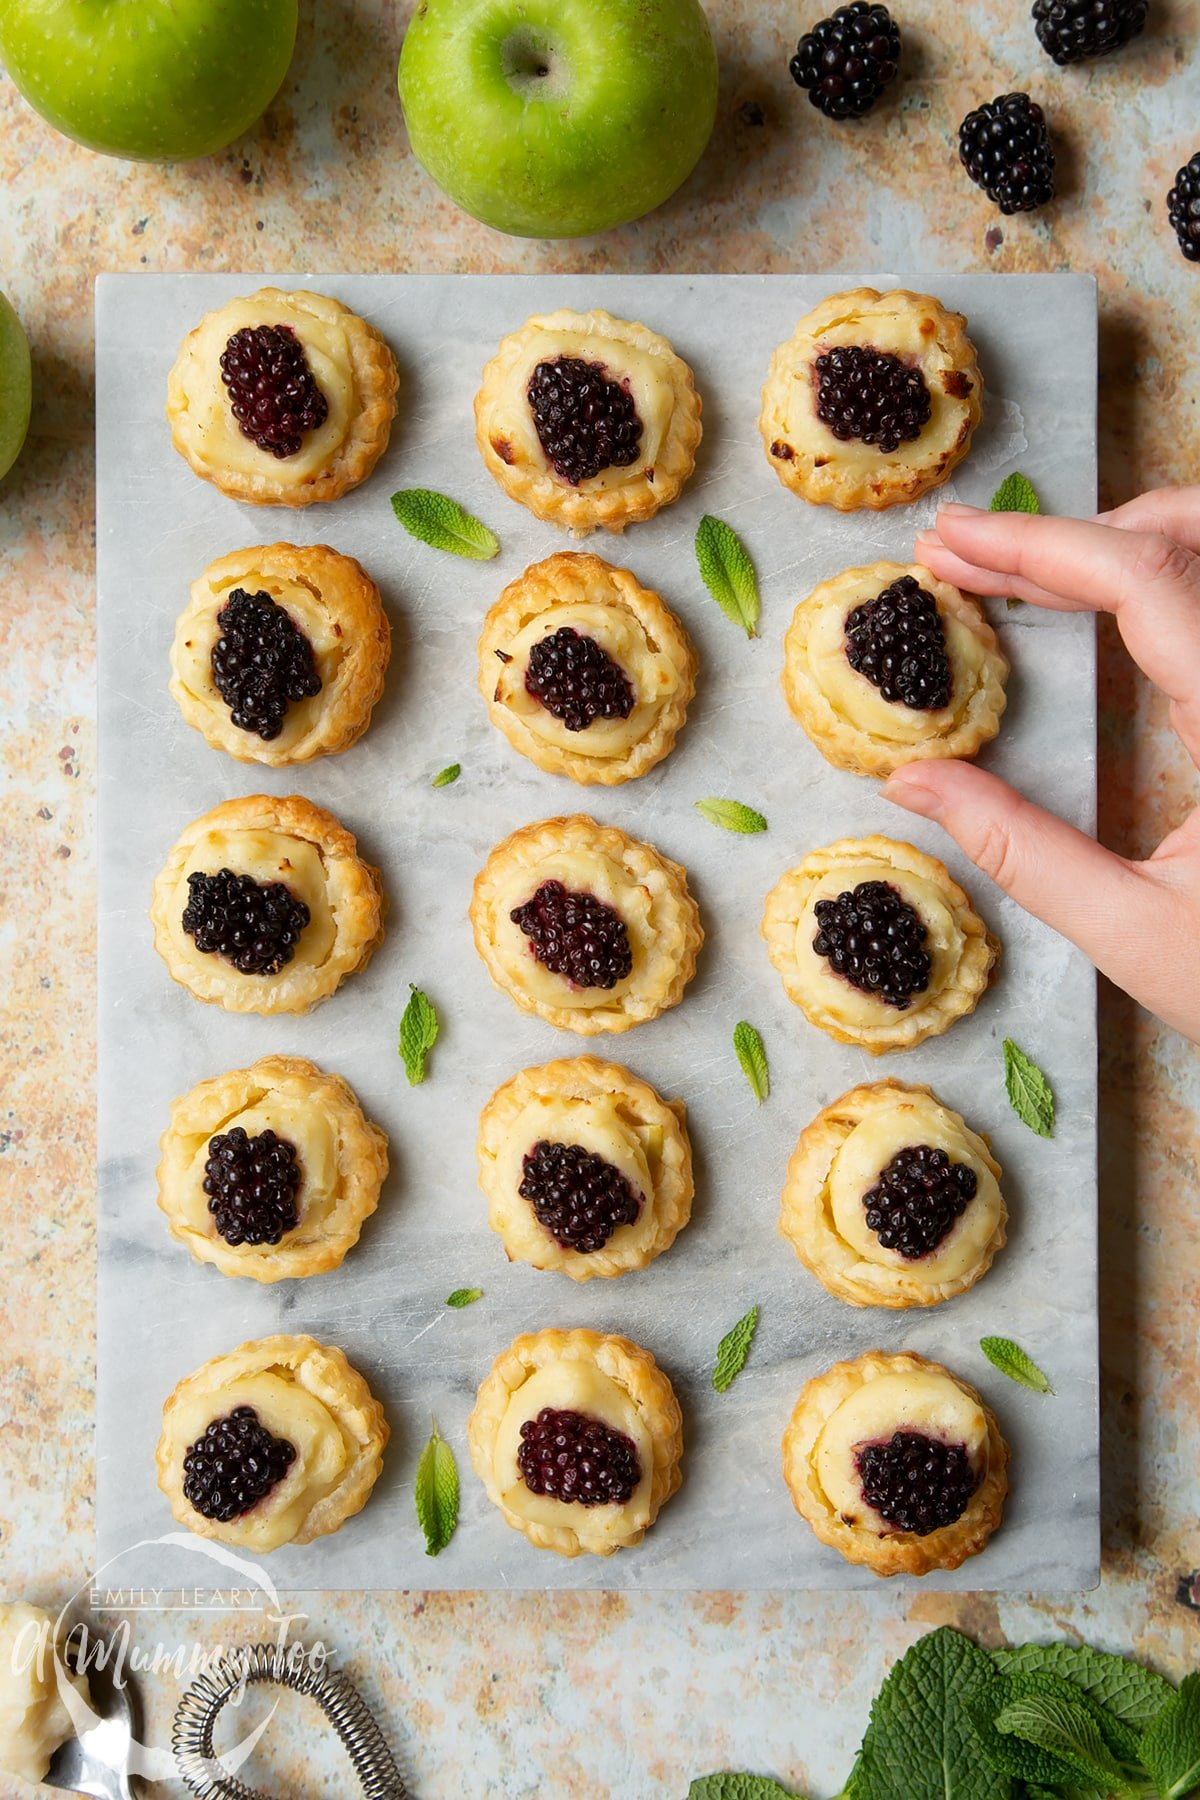 Blackberry tartlets comprised of a small puff pastry disc topped with sliced apple, pastry cream and a blackberry sit on a marble board with tiny mint leaves scattered around them. A hand holds one of the tarts.